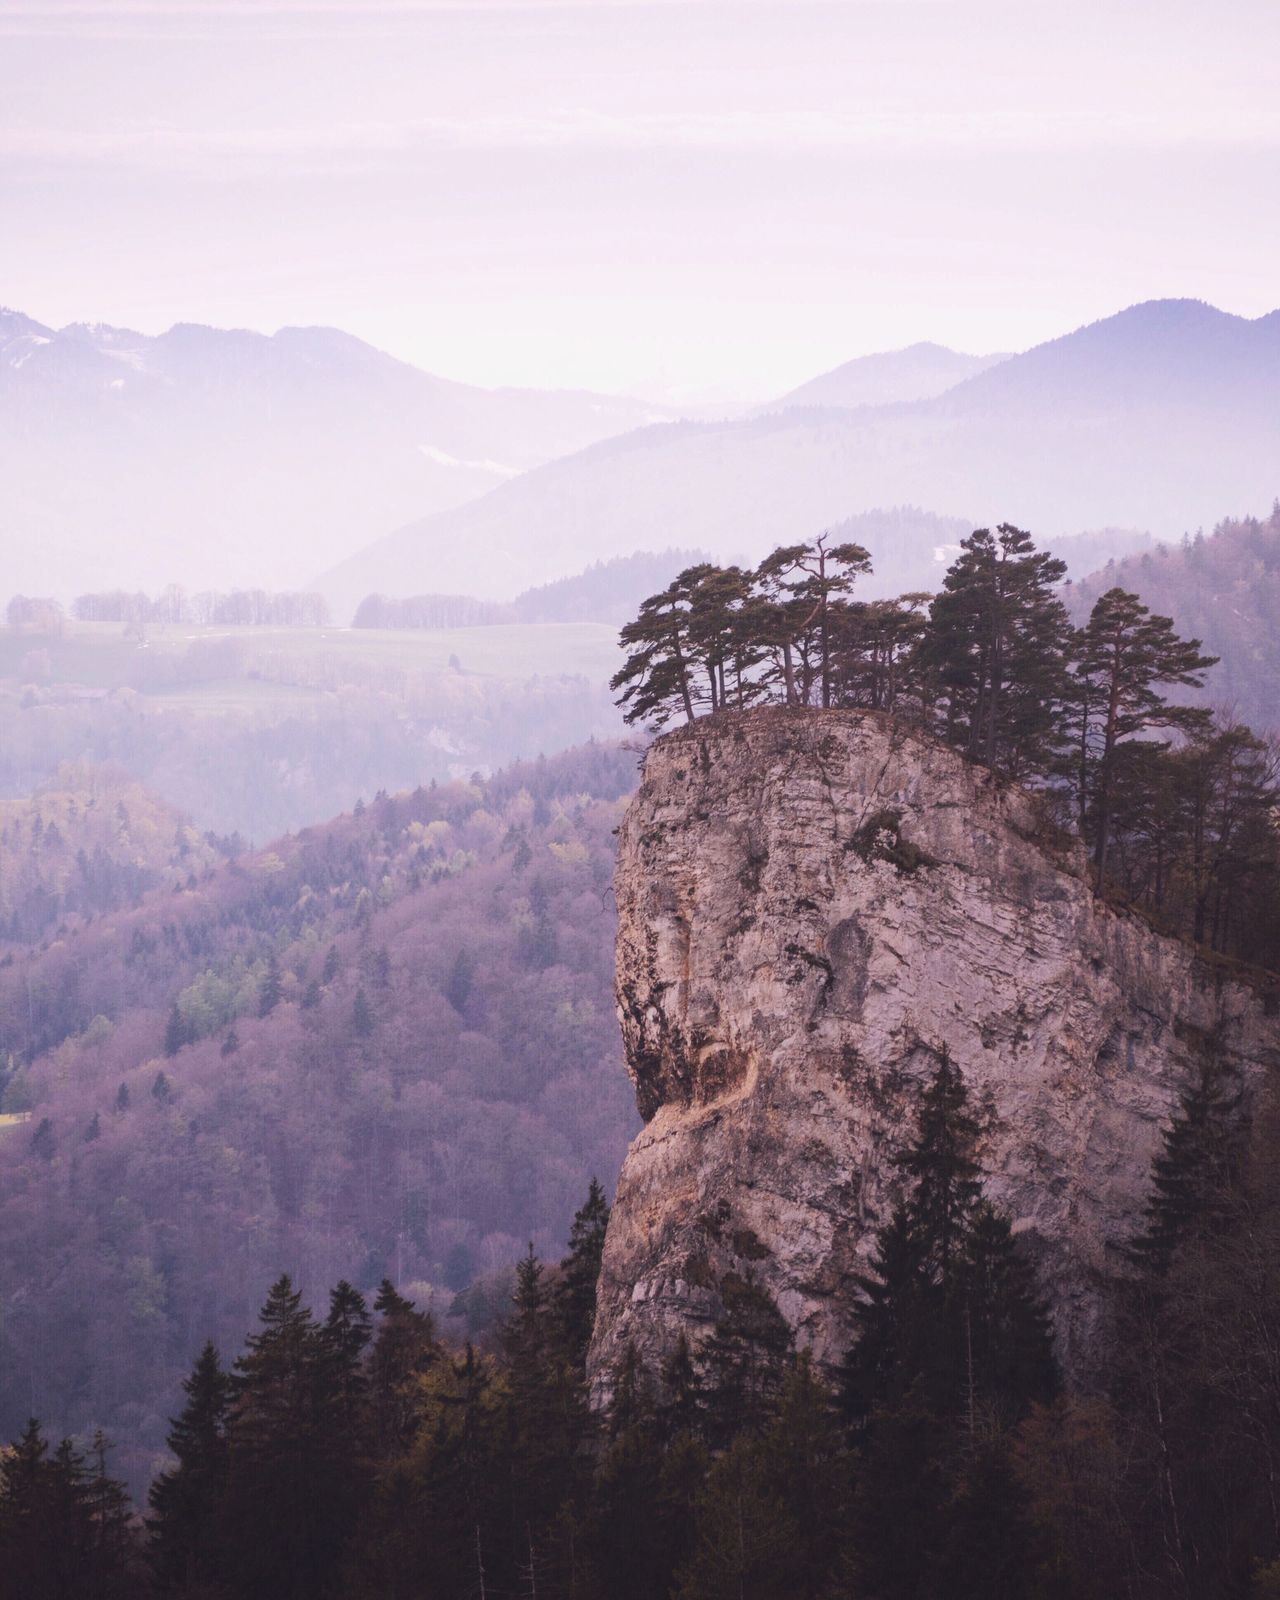 Mountain Nature Beauty In Nature Tree Tranquility Scenics Tranquil Scene Mountain Range Day Outdoors Landscape No People Forest Sky The Great Outdoors - 2017 EyeEm Awards at Belchen Switzerland